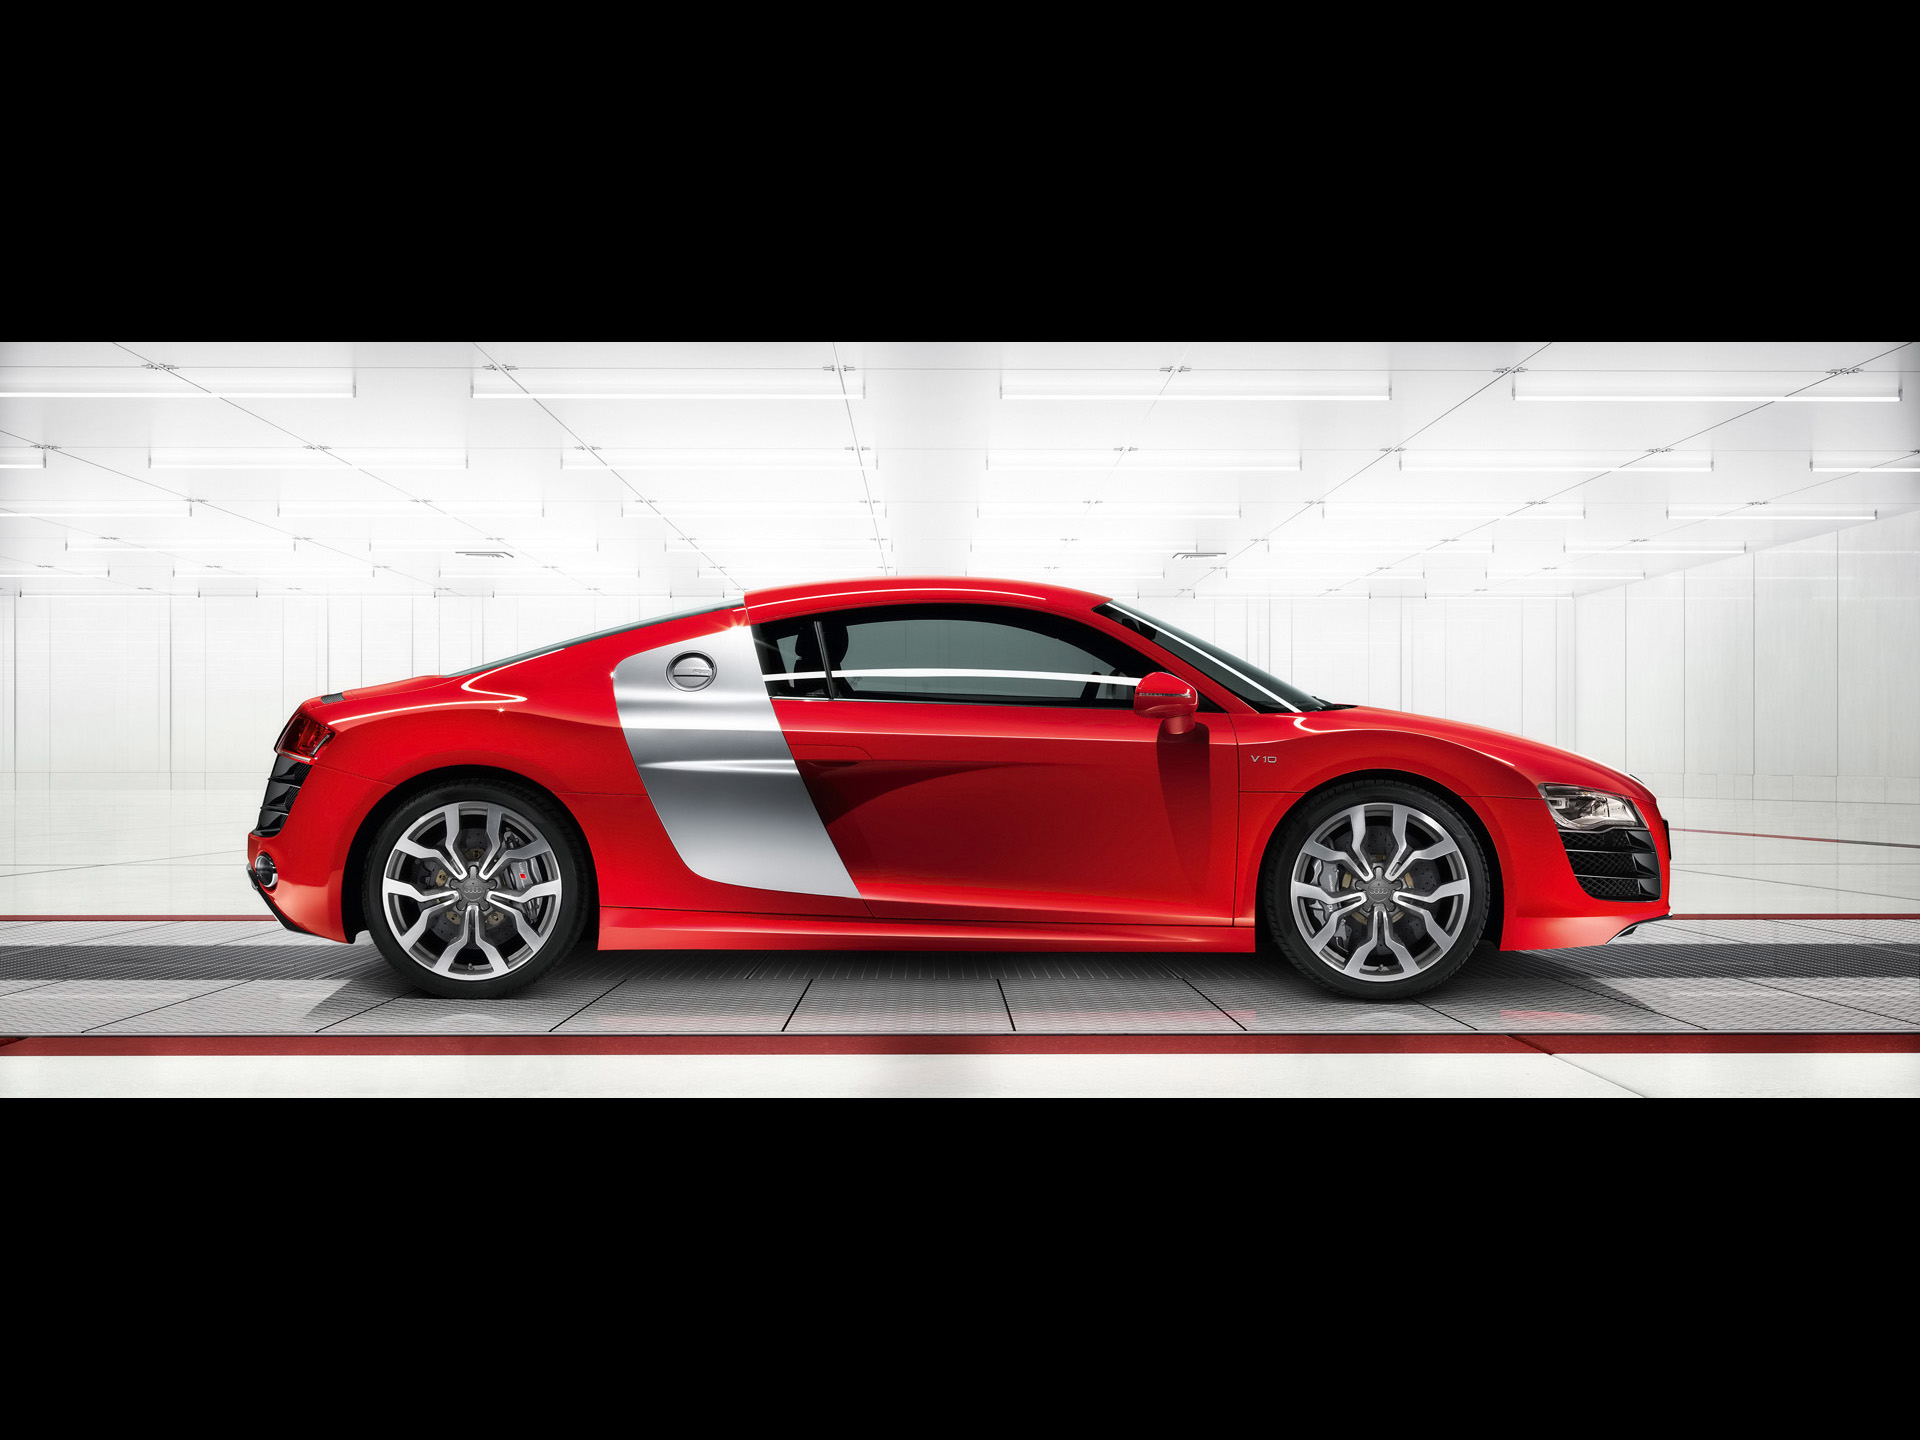 Audi R8 HD background Audi wallpapers 1920x1440